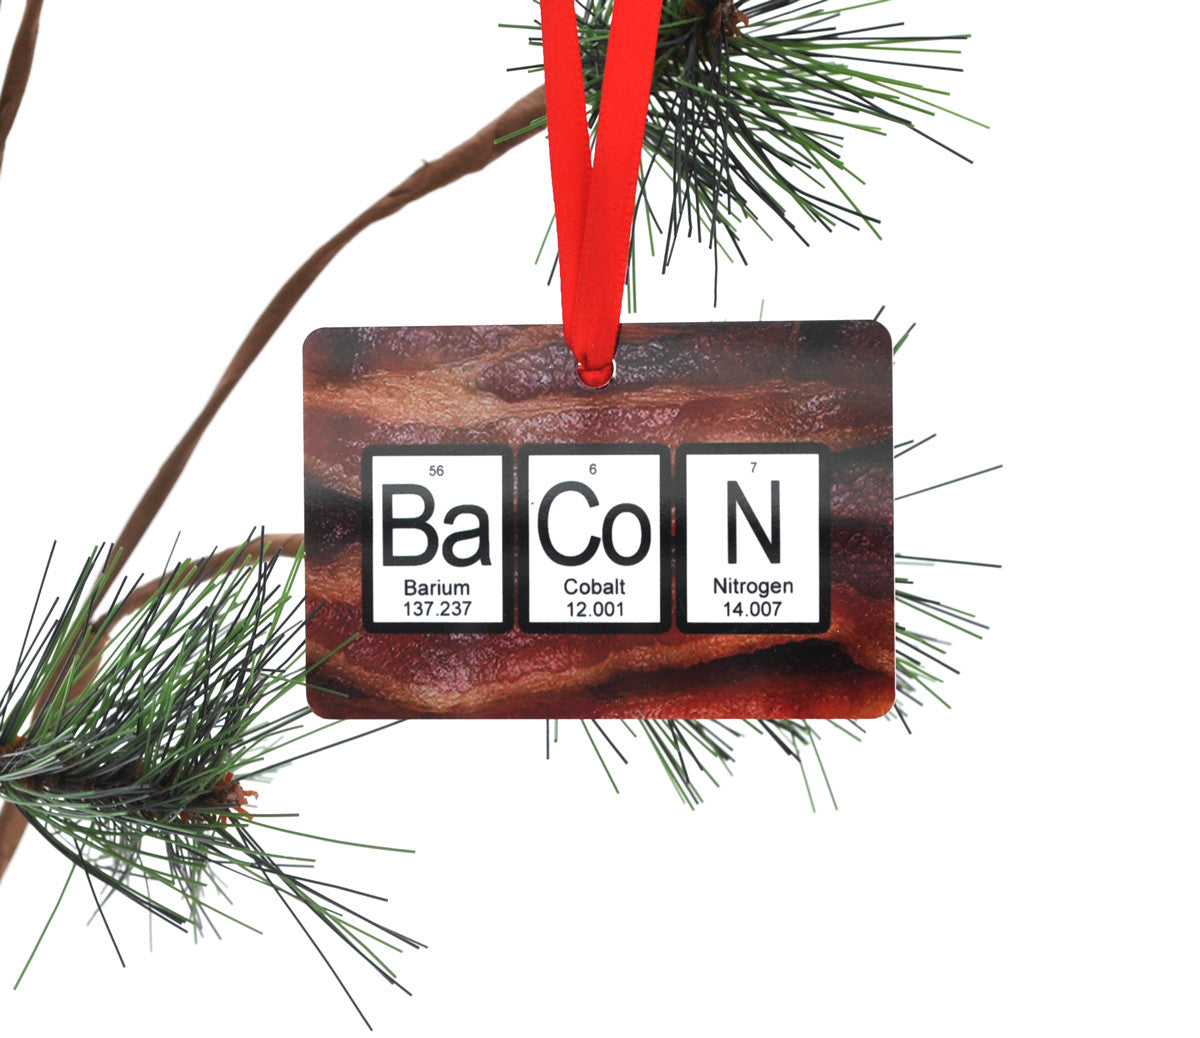 Bacon periodic table christmas ornament neurons not included bacon periodic table christmas ornament gamestrikefo Gallery